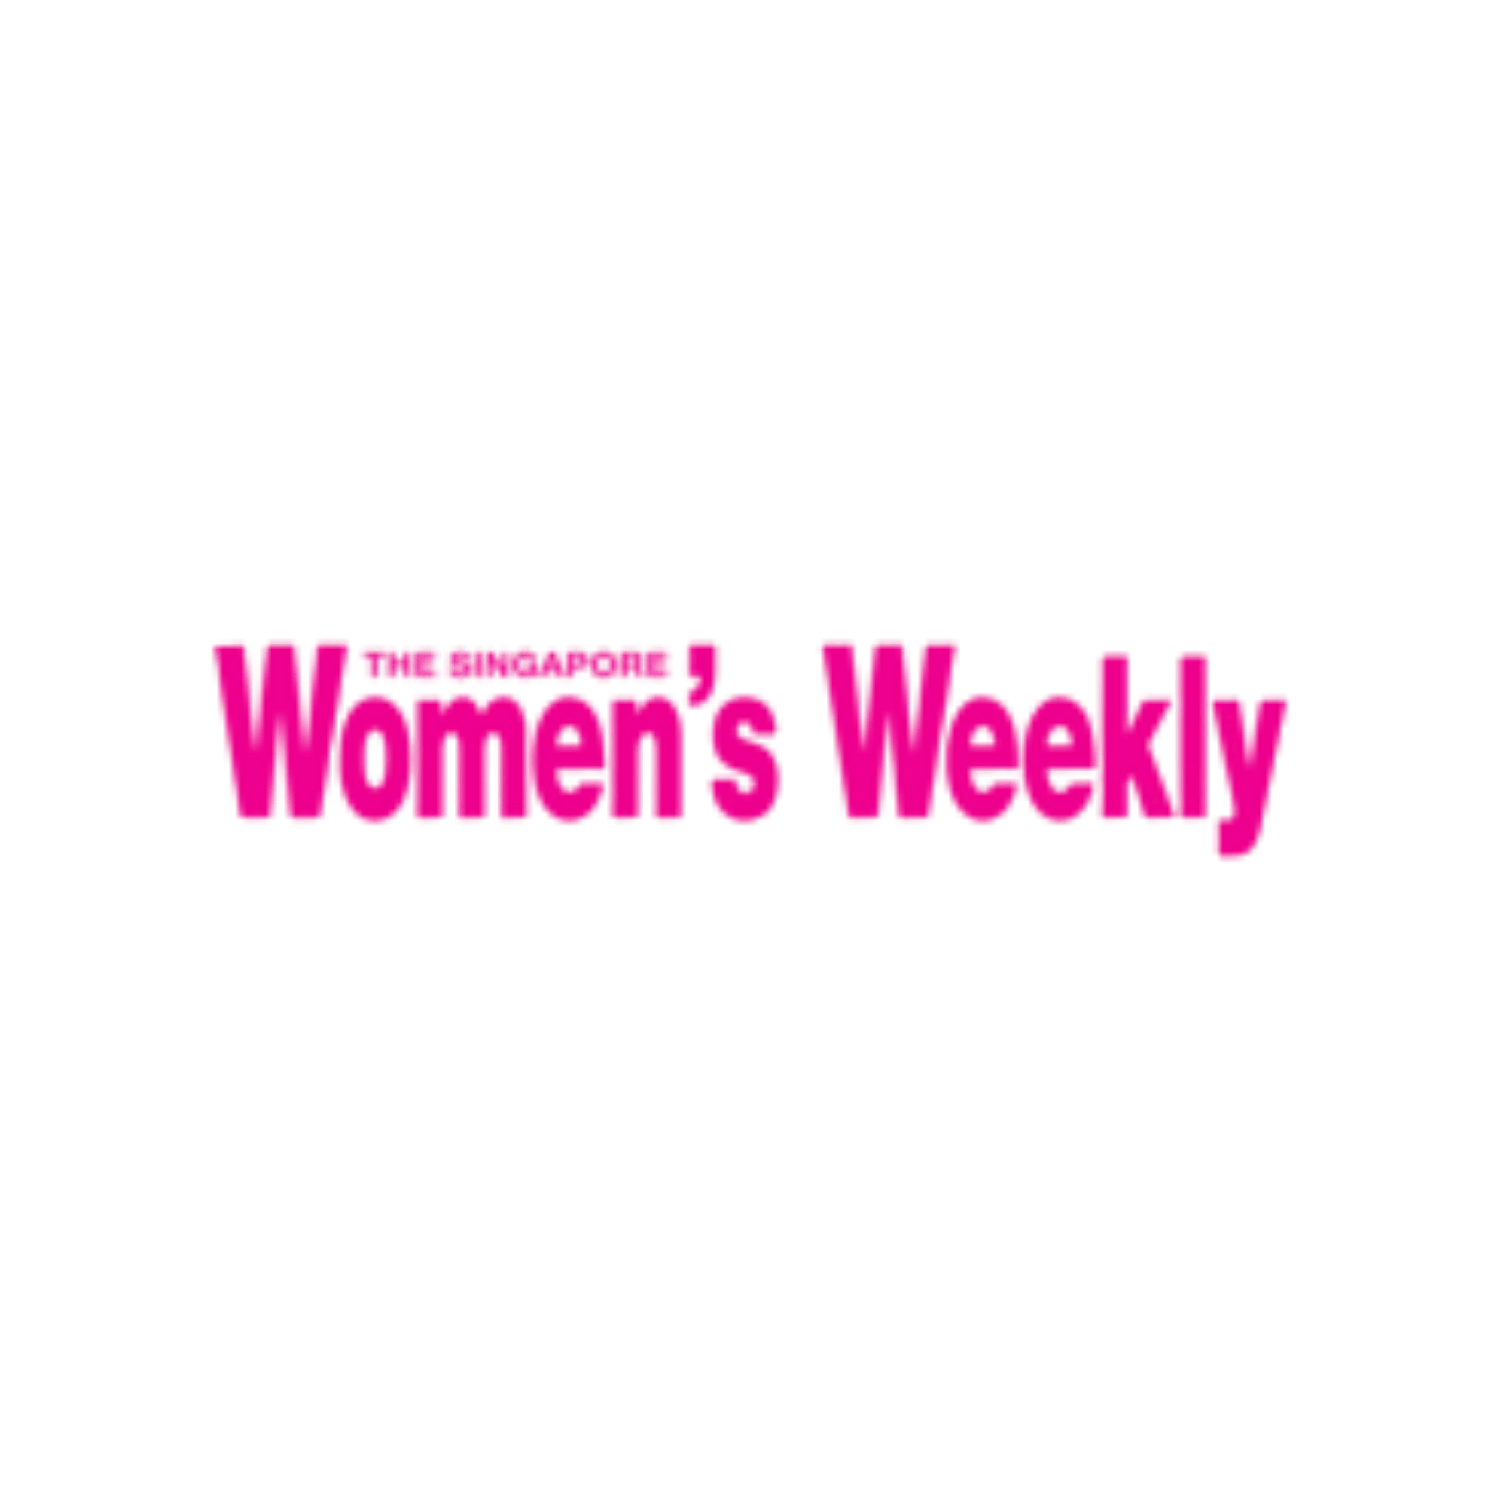 Women's Weekly - Catch Cheating Spouse